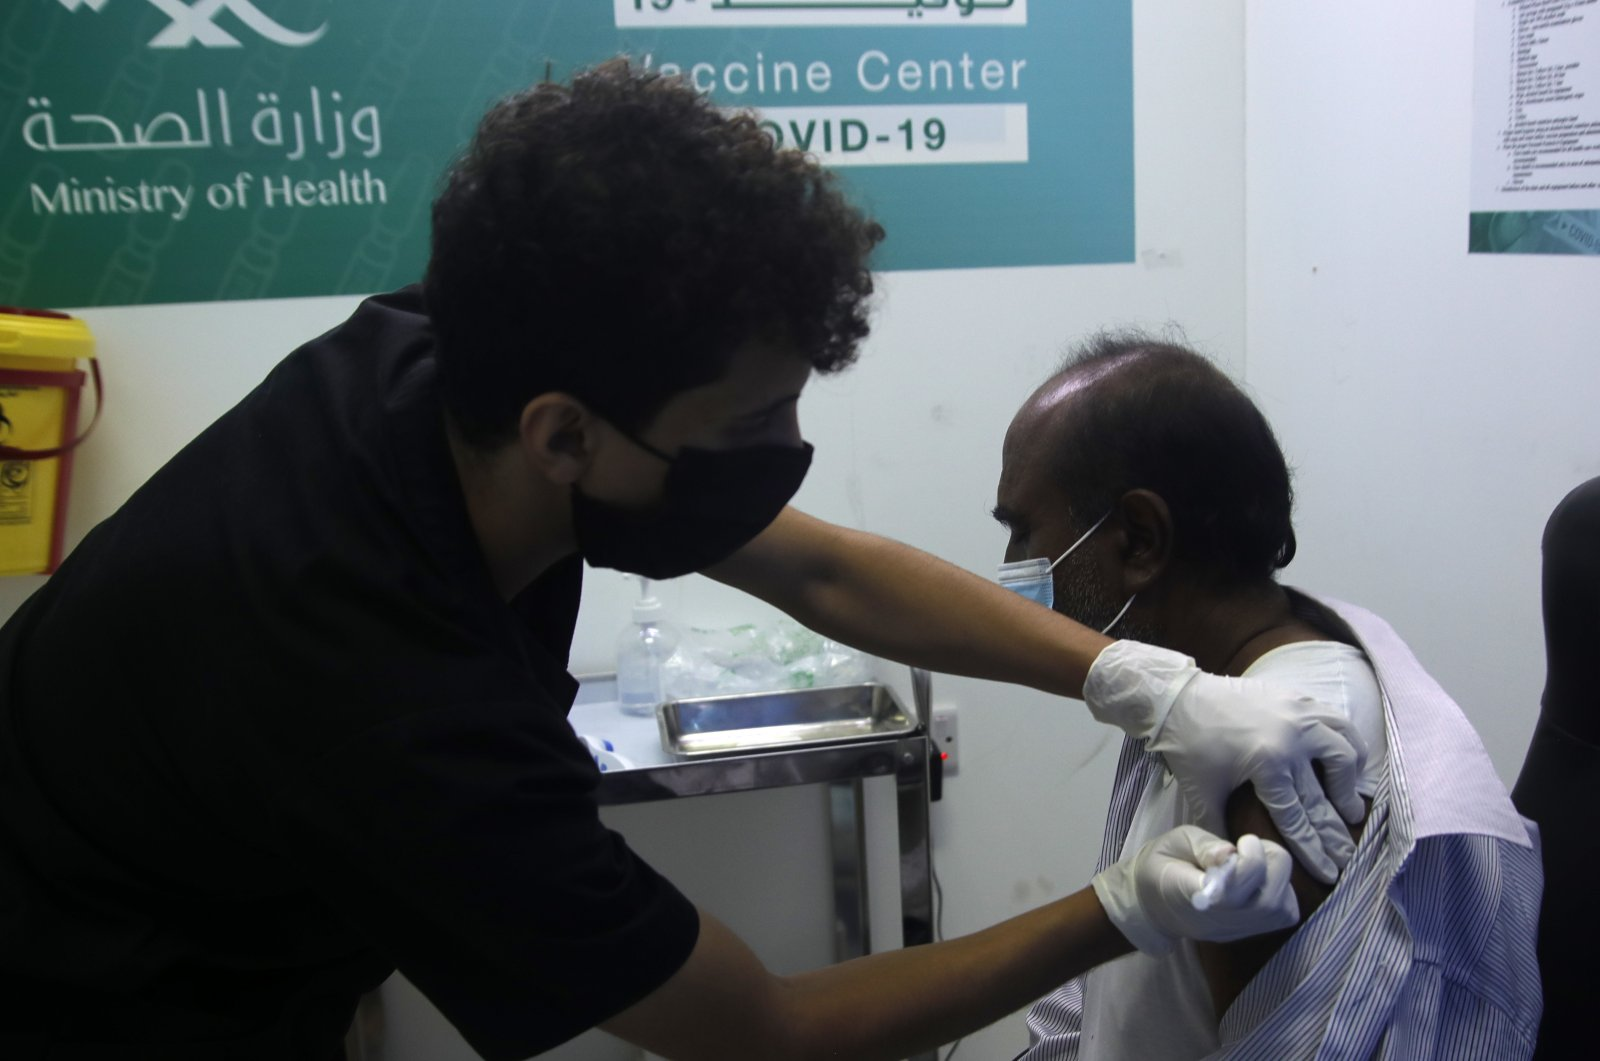 A Saudi physician administers a Pfizer coronavirus vaccine to a man at a vaccination center in the old Jeddah airport, Saudi Arabia, May 18, 2021. (AP Photo)